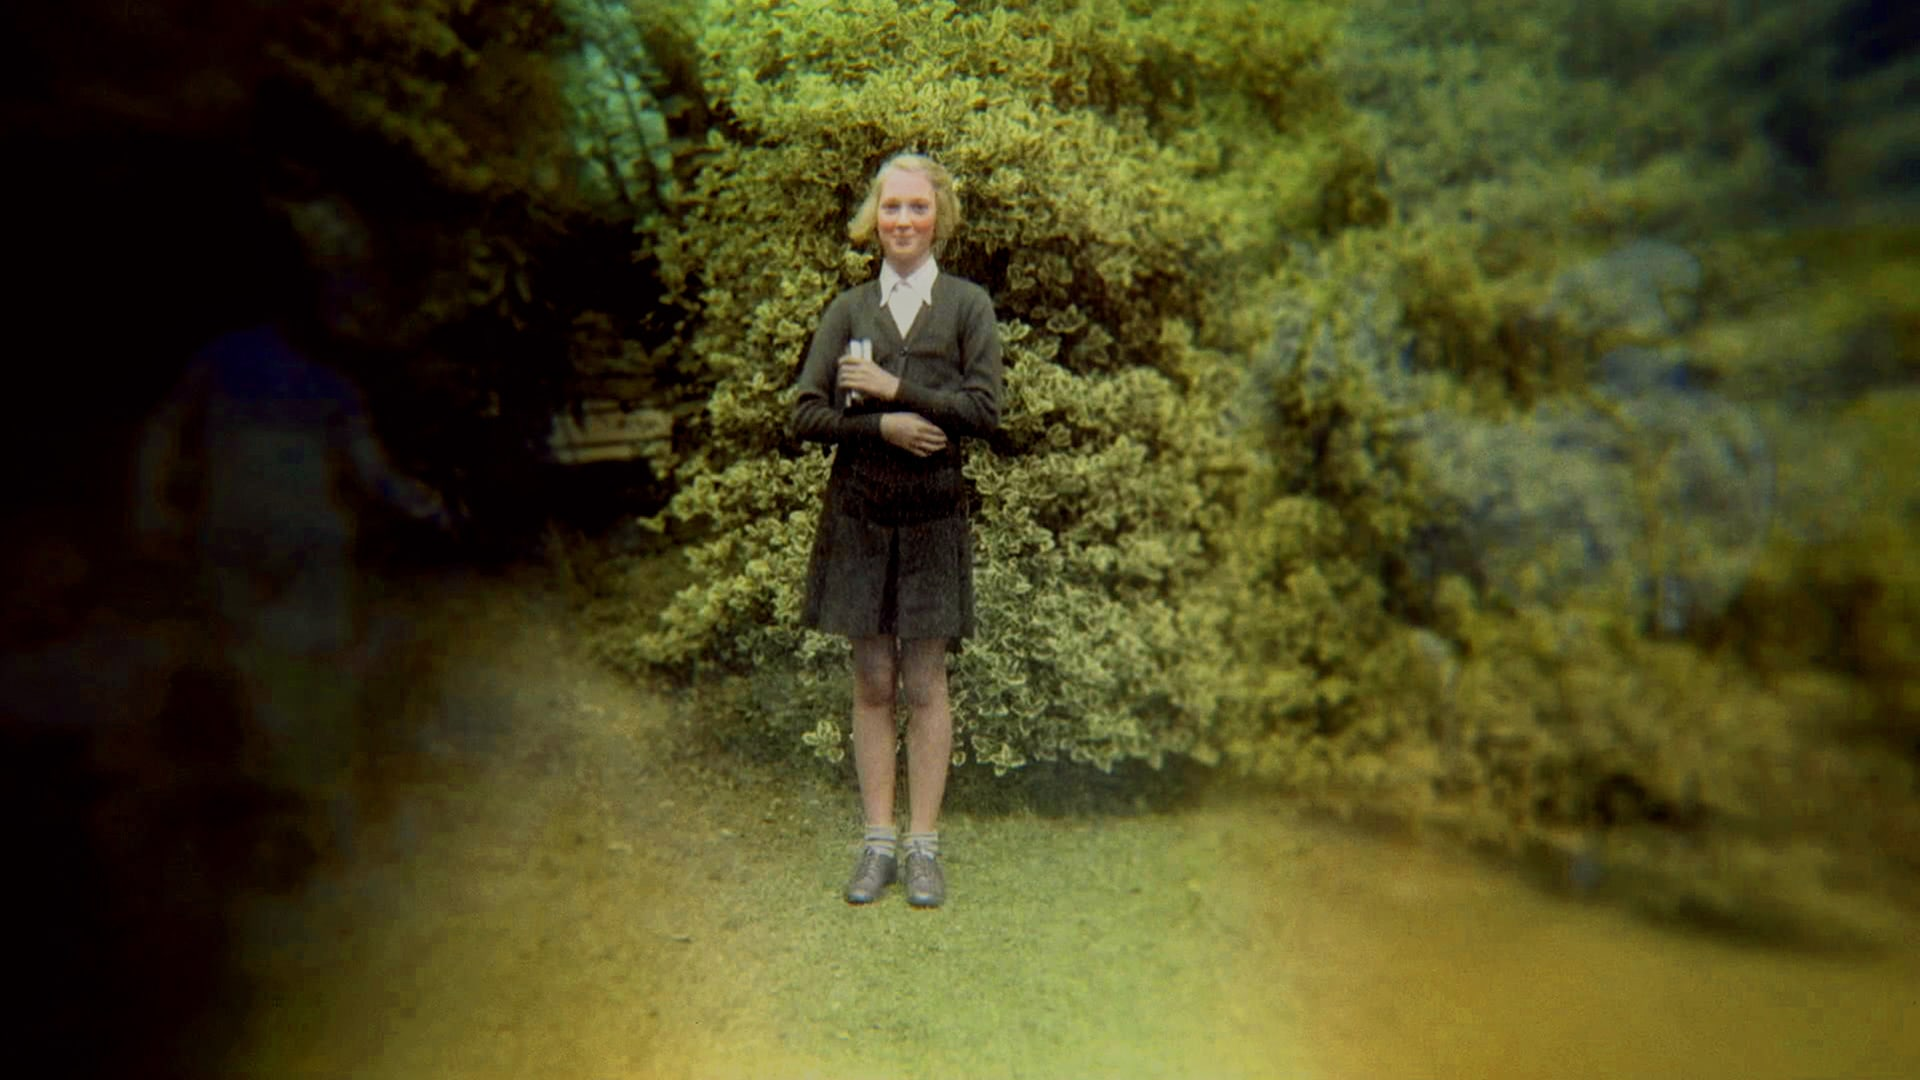 A young Jane Goodall poses for a picture in her school uniform in Bournemouth, England (Photo by Jane Goodall Institute)